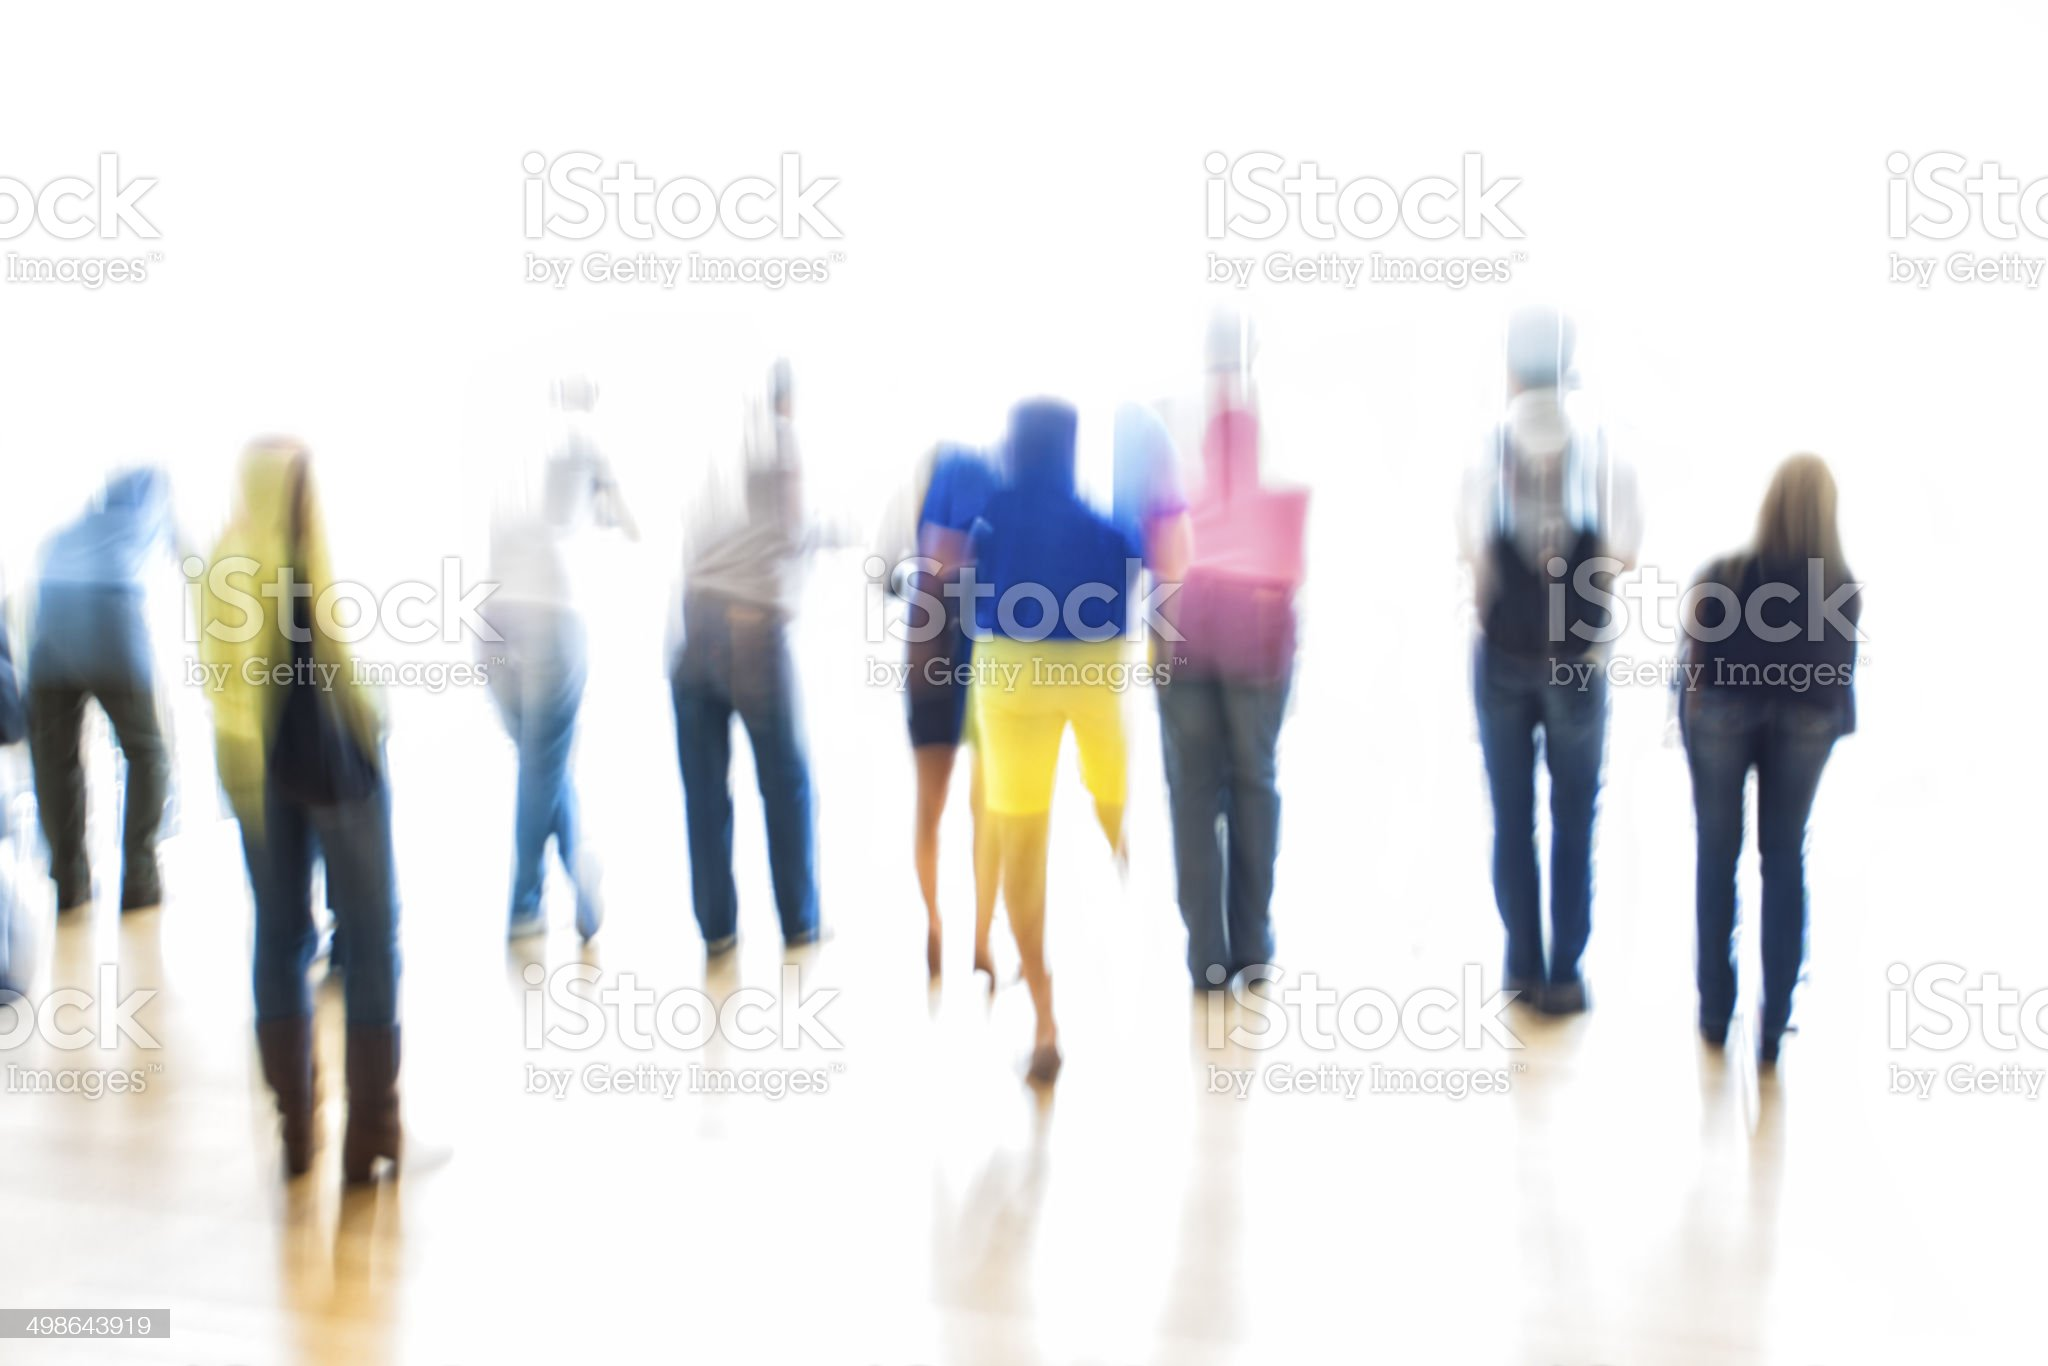 Symbolic, Generic, Silhouettes of People royalty-free stock photo